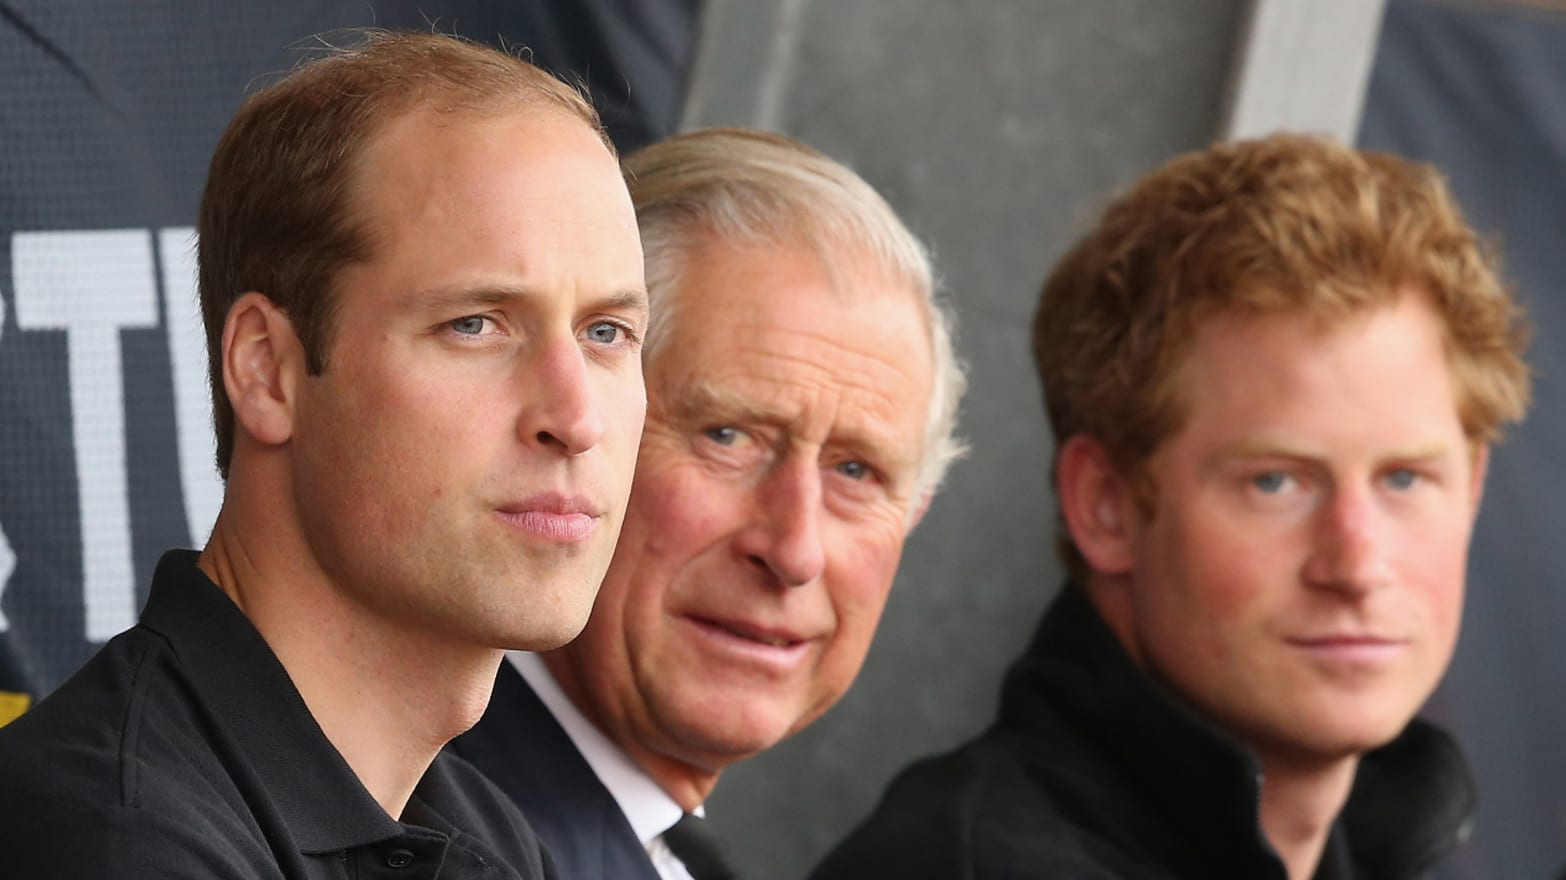 Prince Charles'Sold Out' William and Harry To The Tabloids